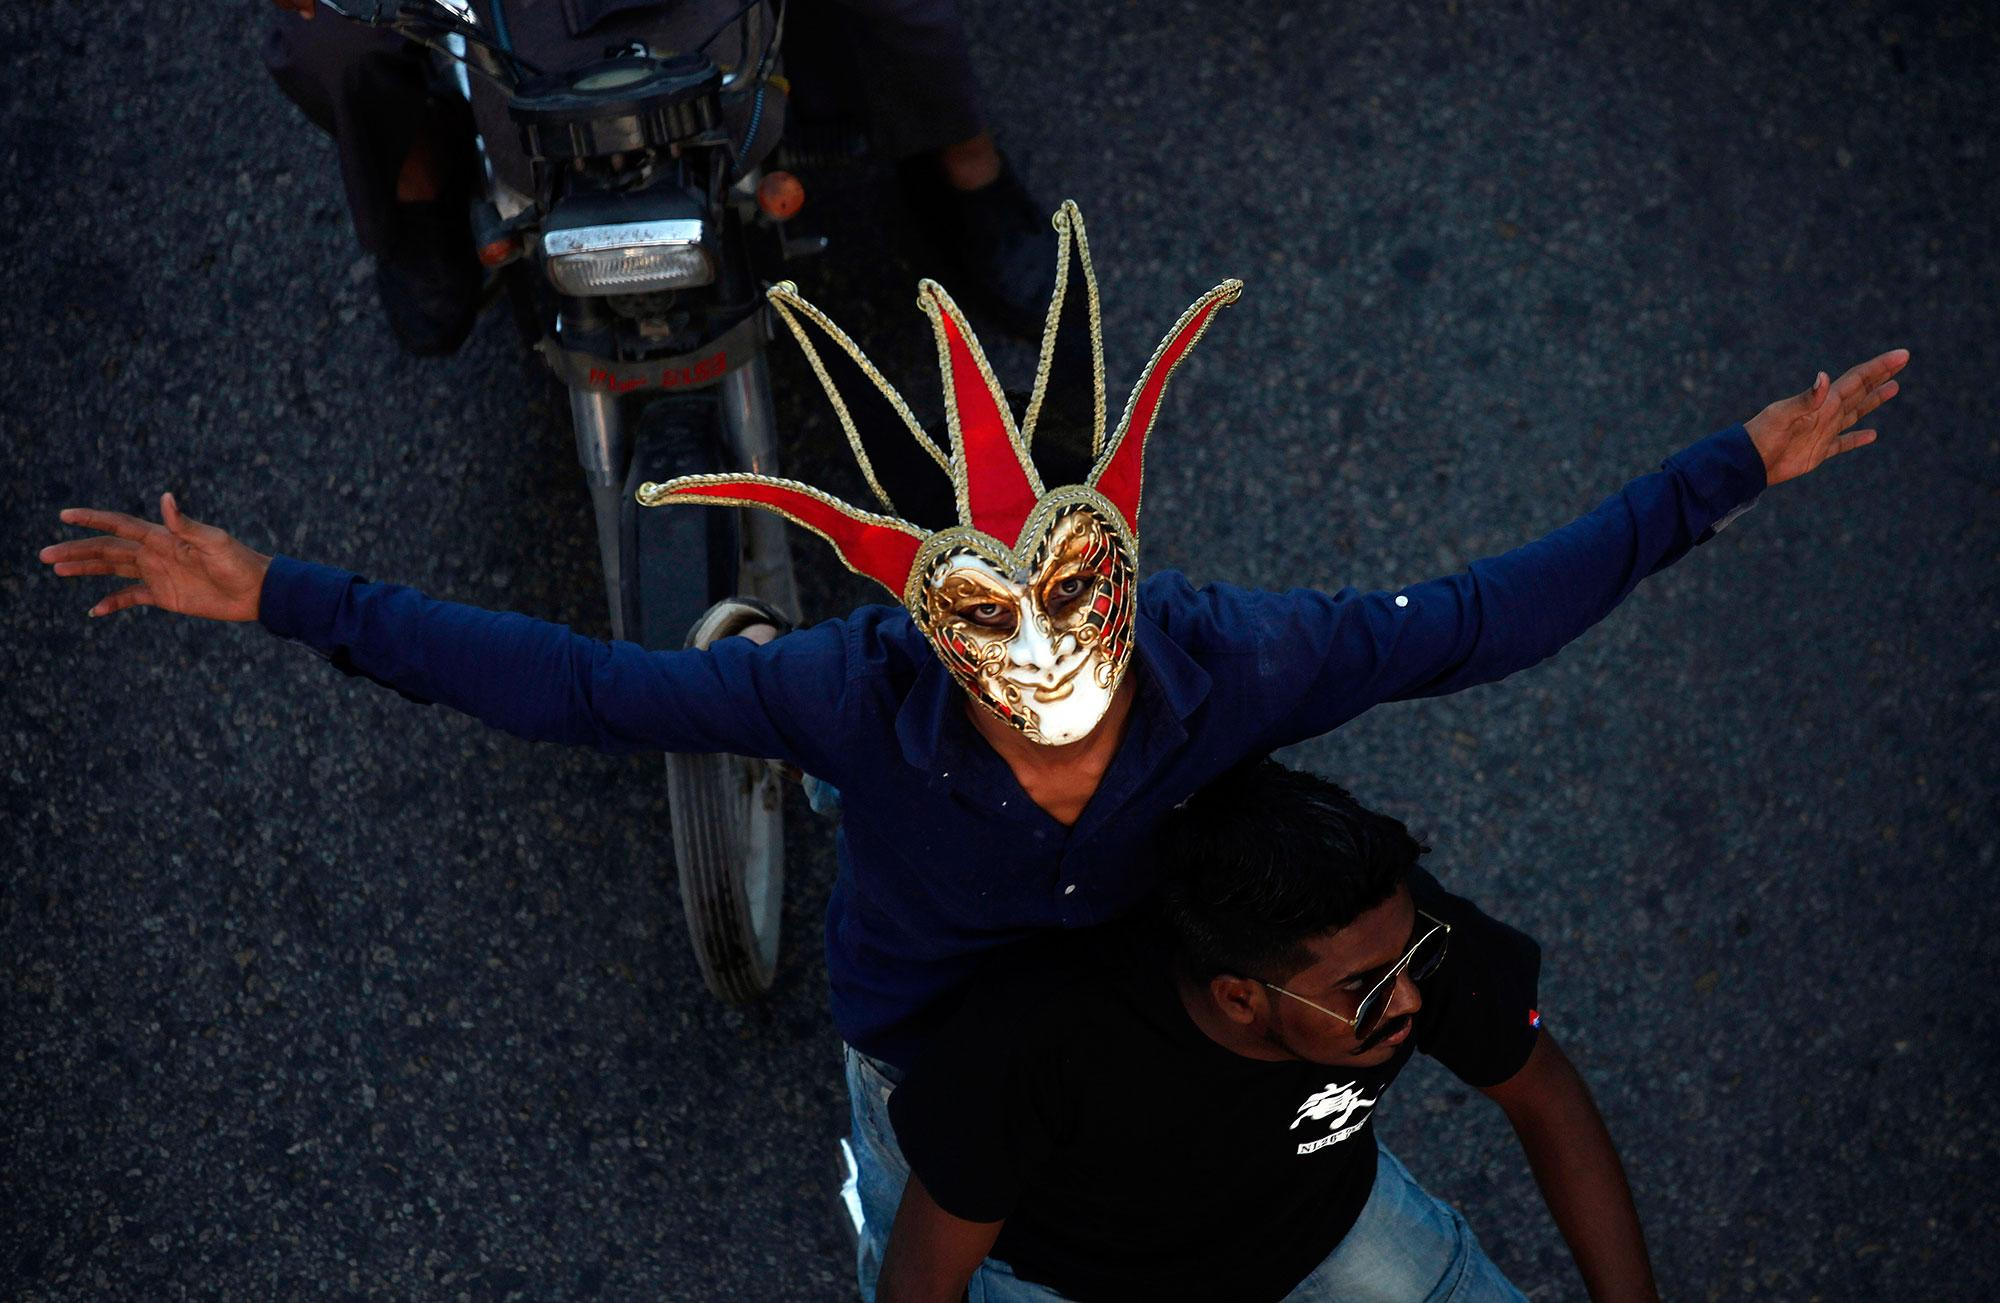 <p>A Pakistani Christian wears mask while participating in a peace rally in connection with a Christmas celebration, in Karachi, Pakistan, Wednesday, Dec. 21, 2016. Although Pakistani Christians are in the minority, Christmas is a national holiday and is observed across the country as an occasion to celebrate (Photo: Shakil Adil/AP) </p>